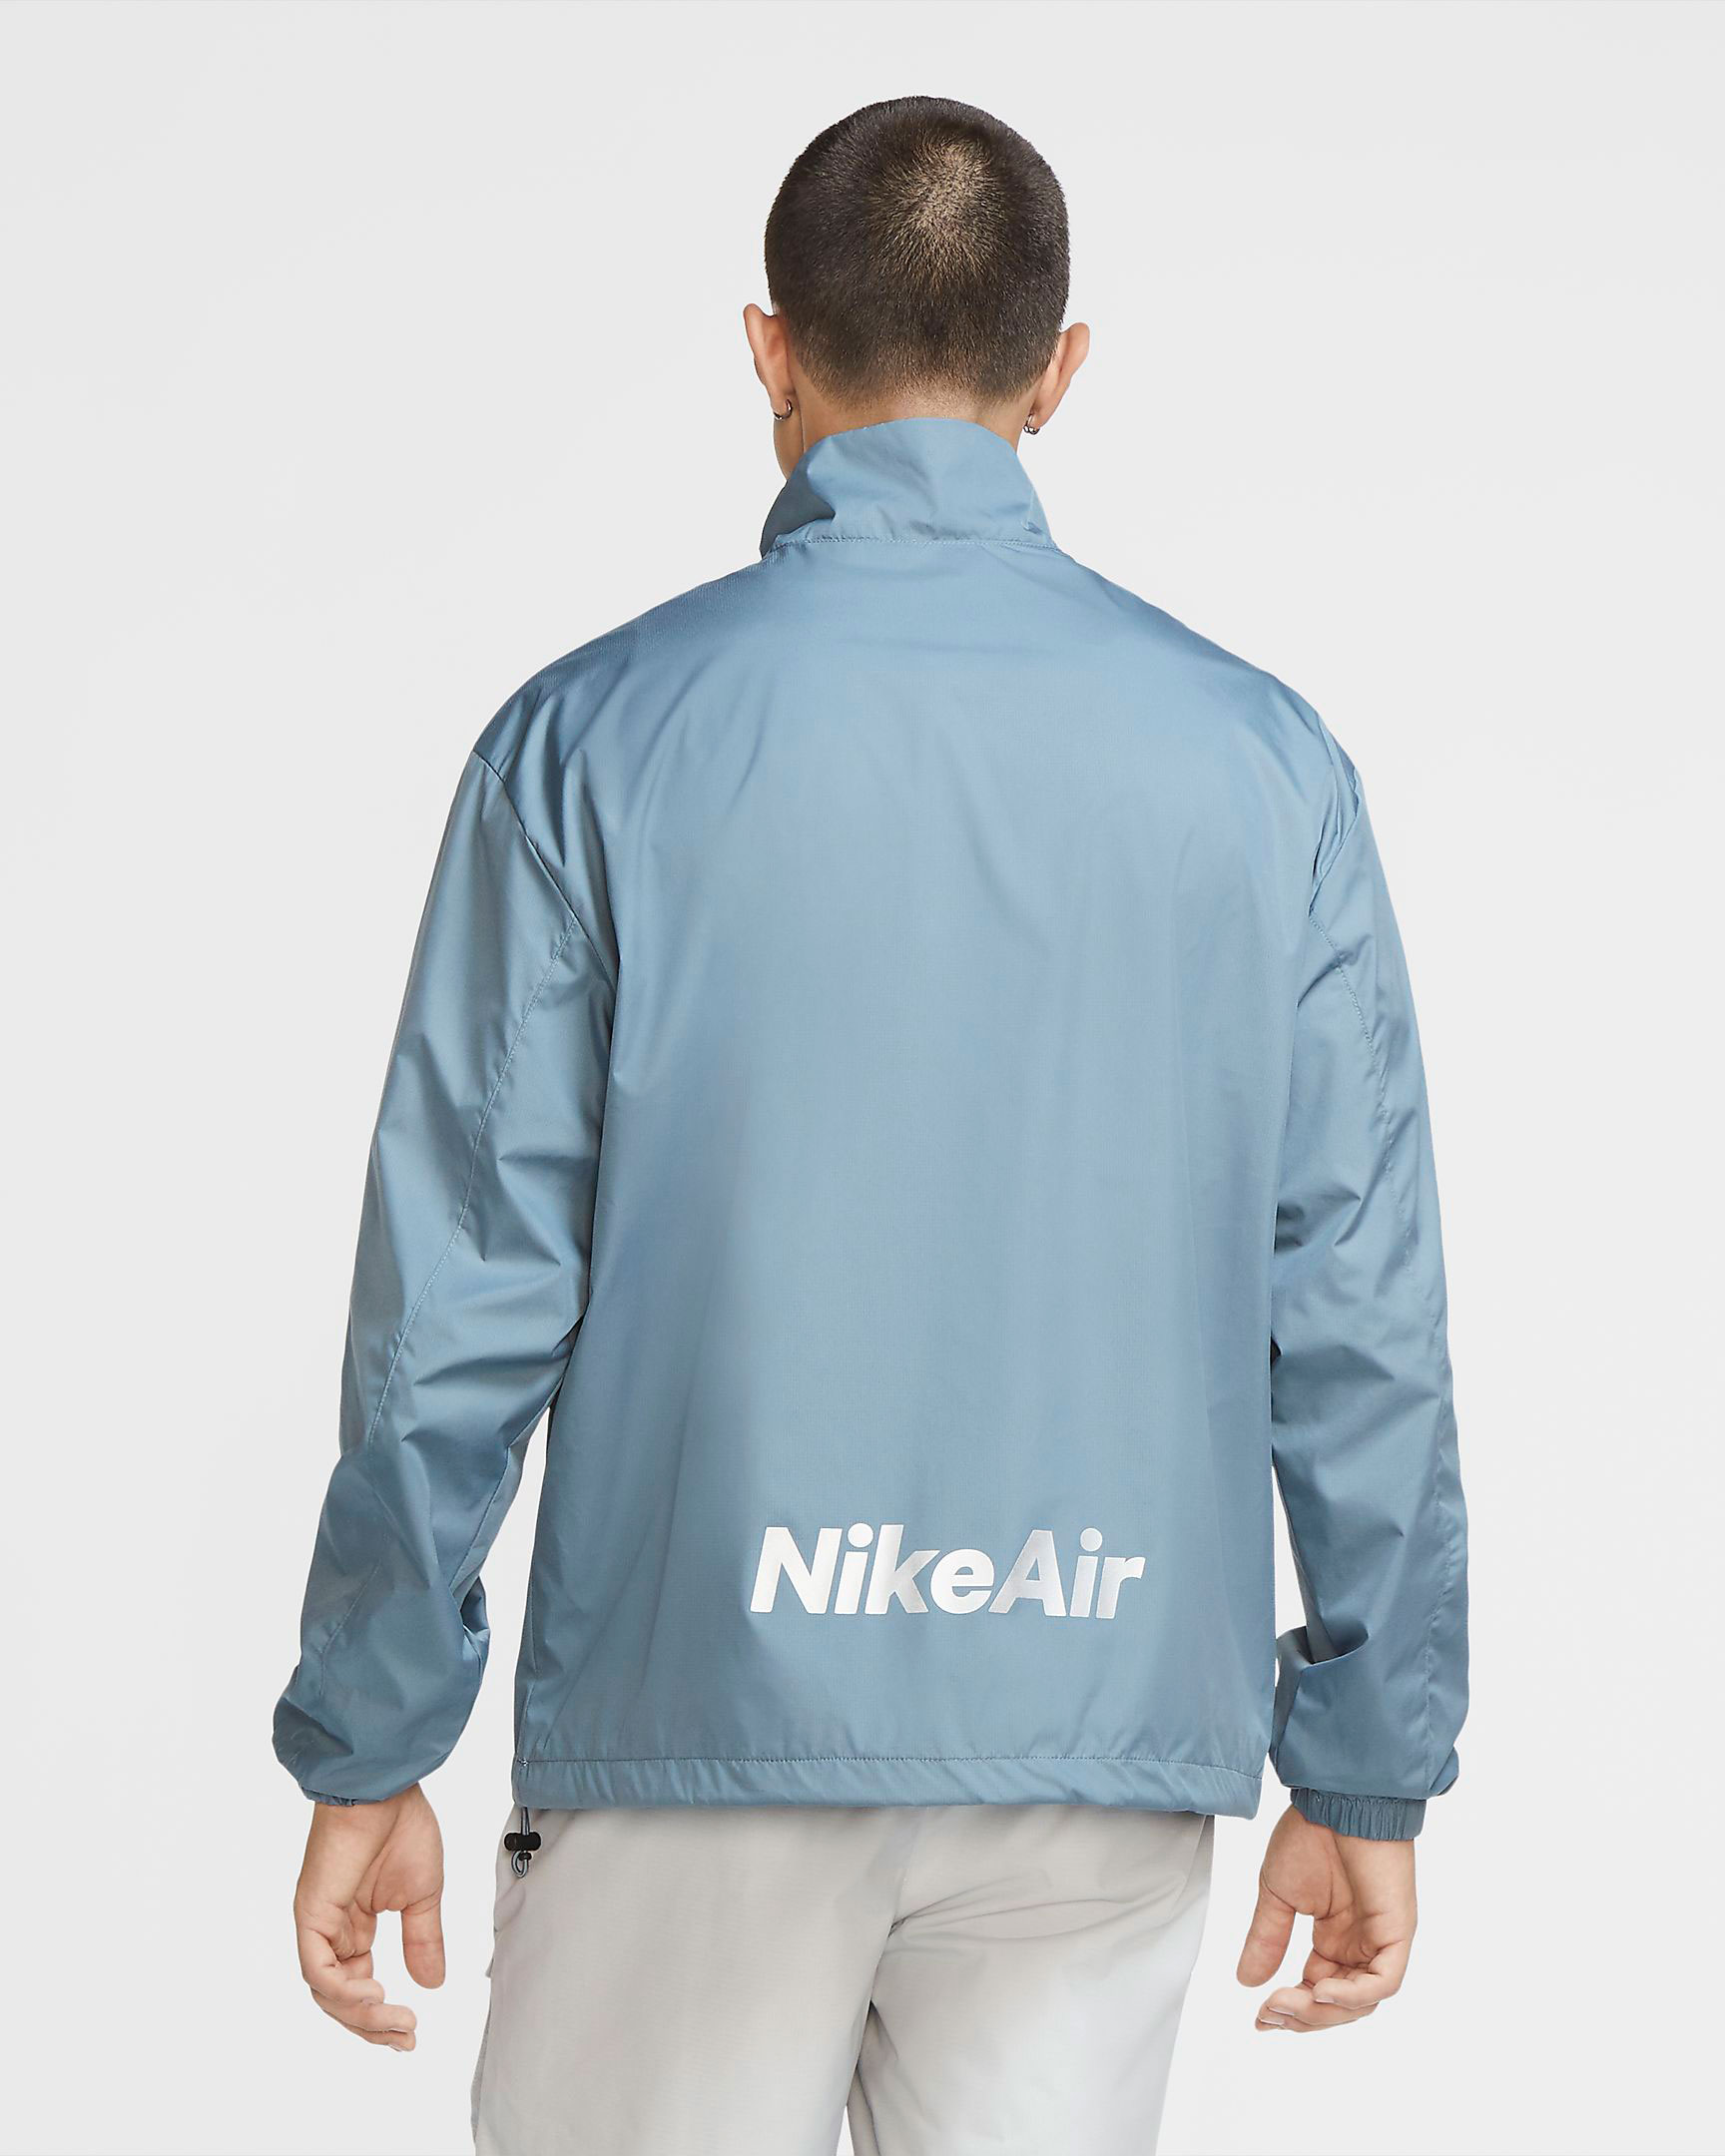 nike-air-utility-reflective-jacket-blue-2